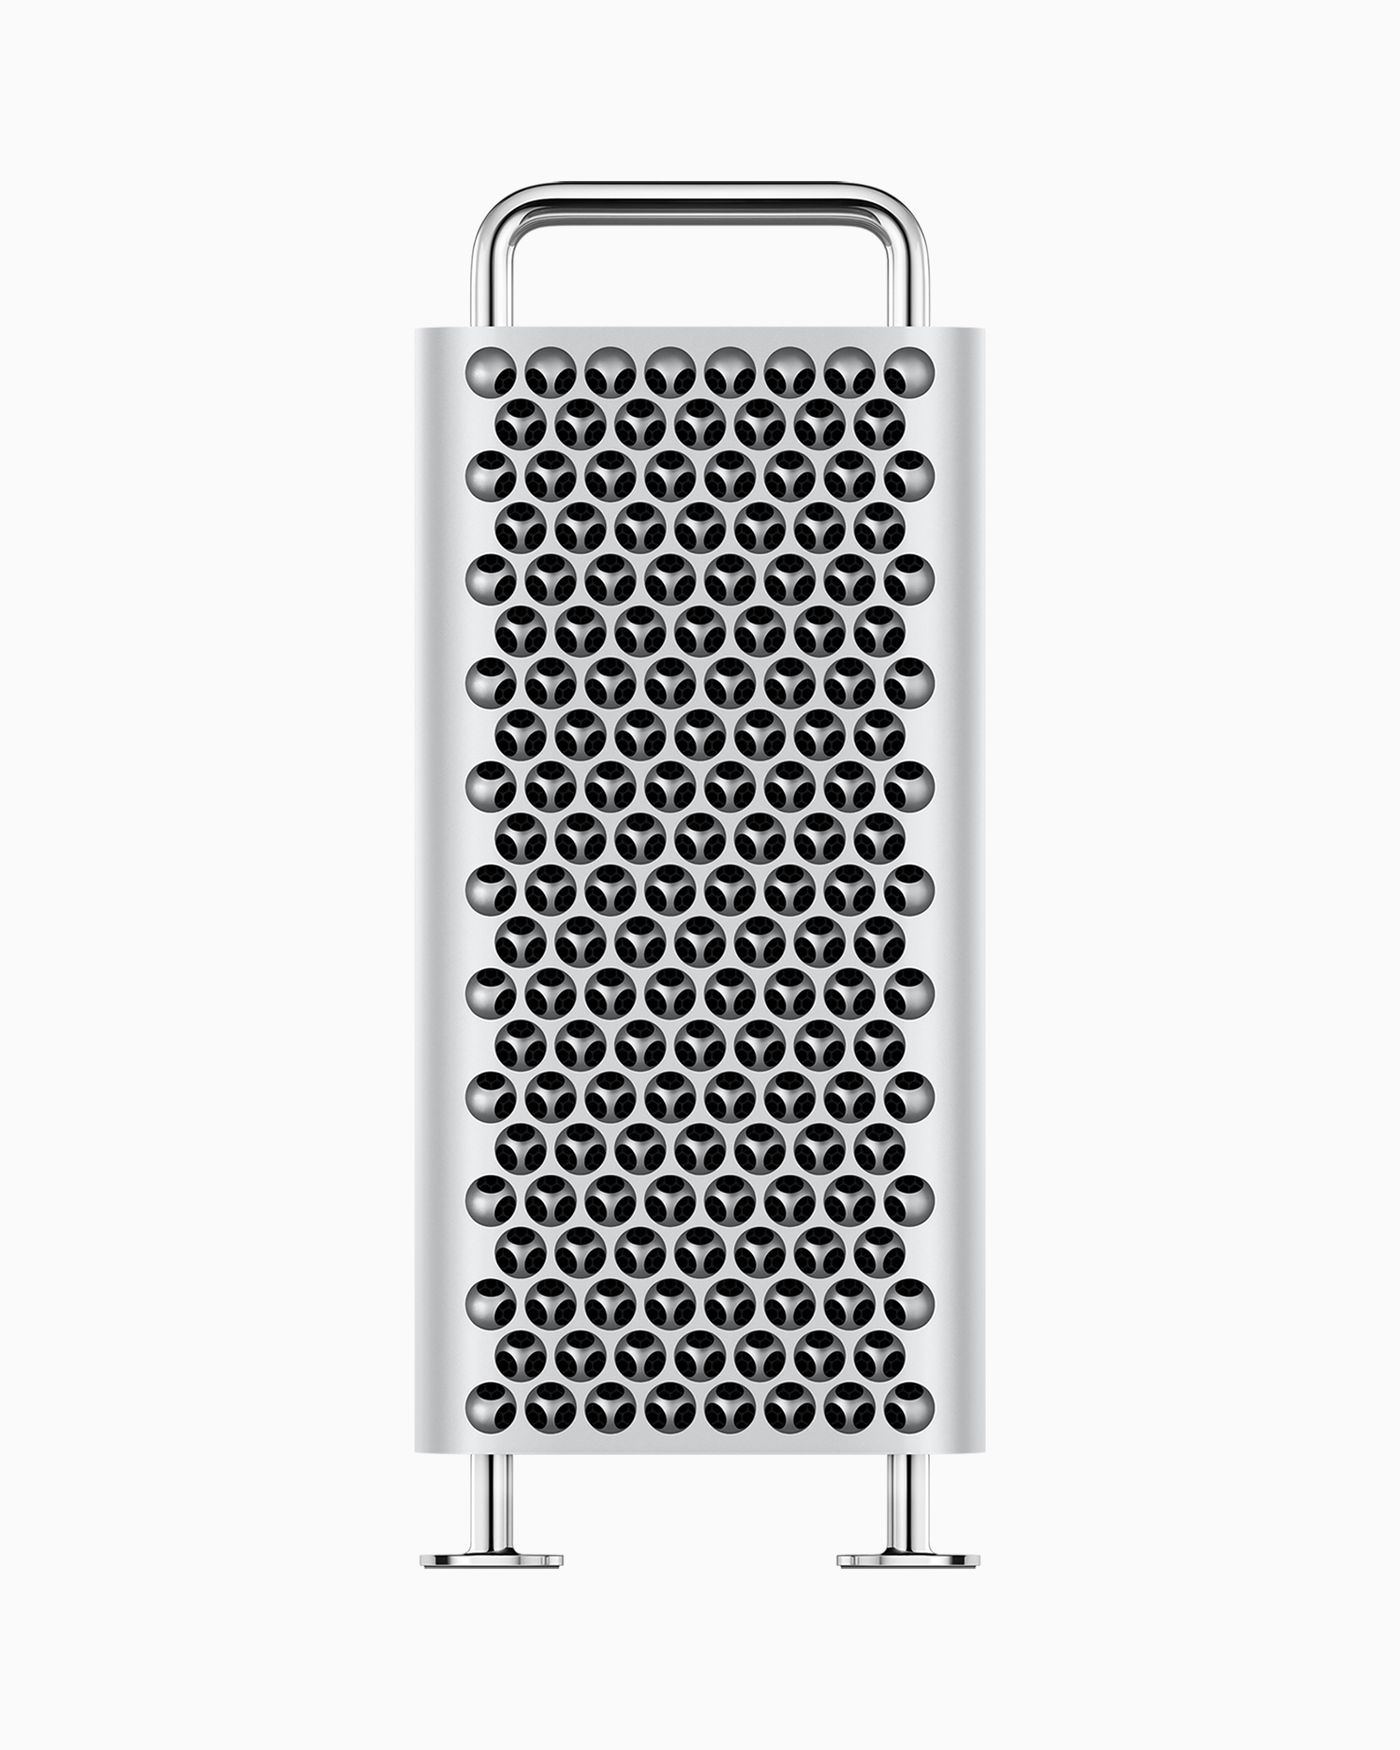 b0aef1917ed Apple announces all-new redesigned Mac Pro, starting at $5,999 - The Verge